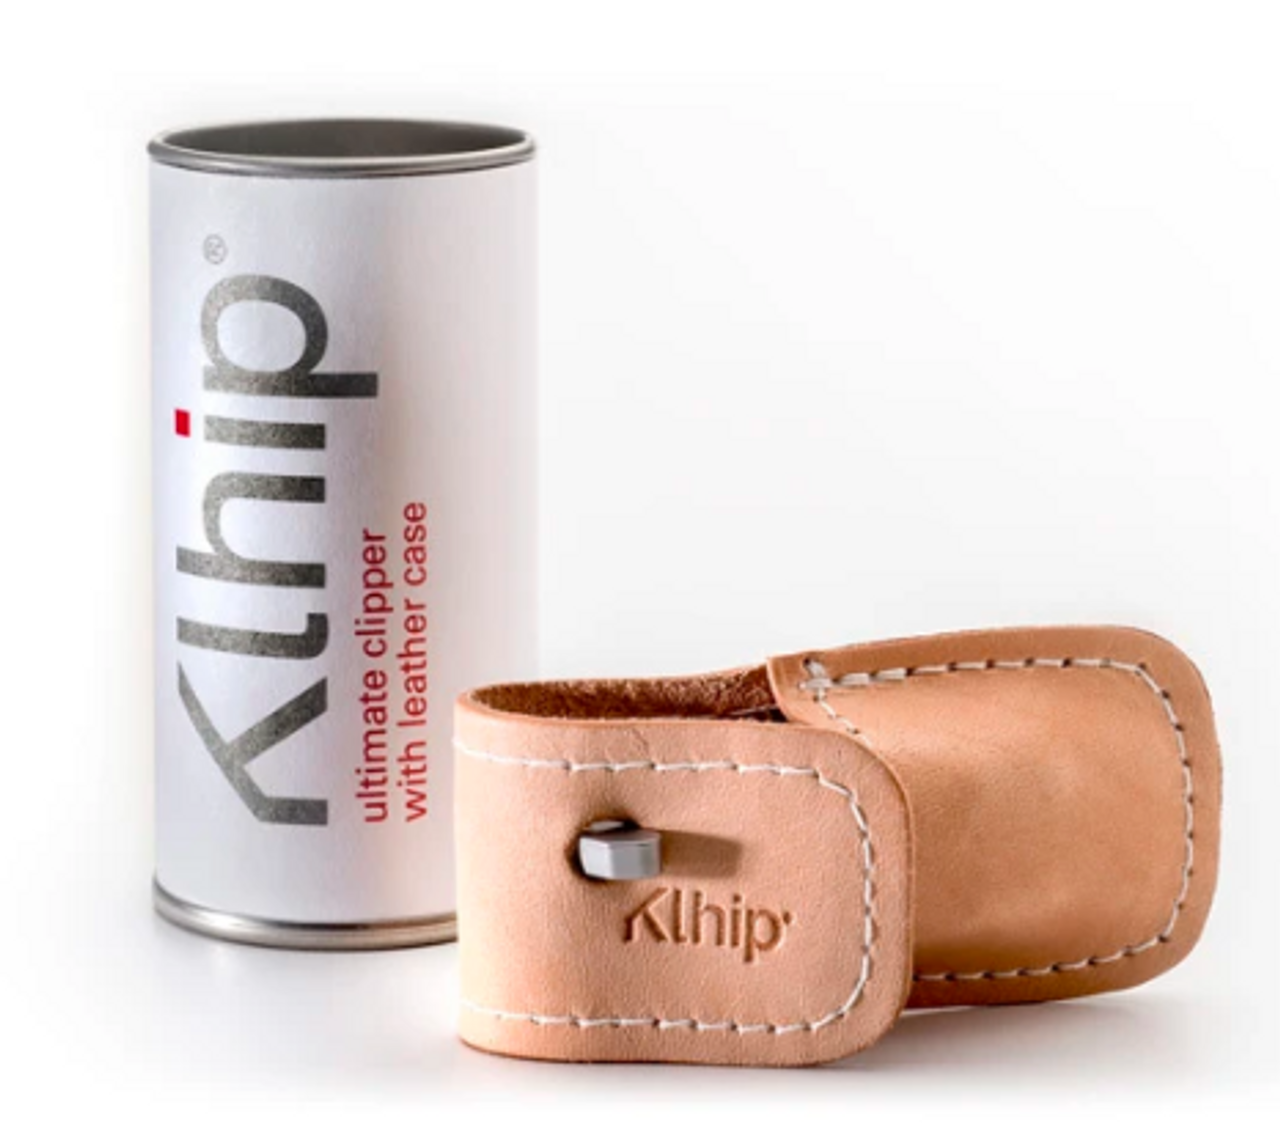 Klhip KLP-00201 Ultimate Clipper w/Leather Case